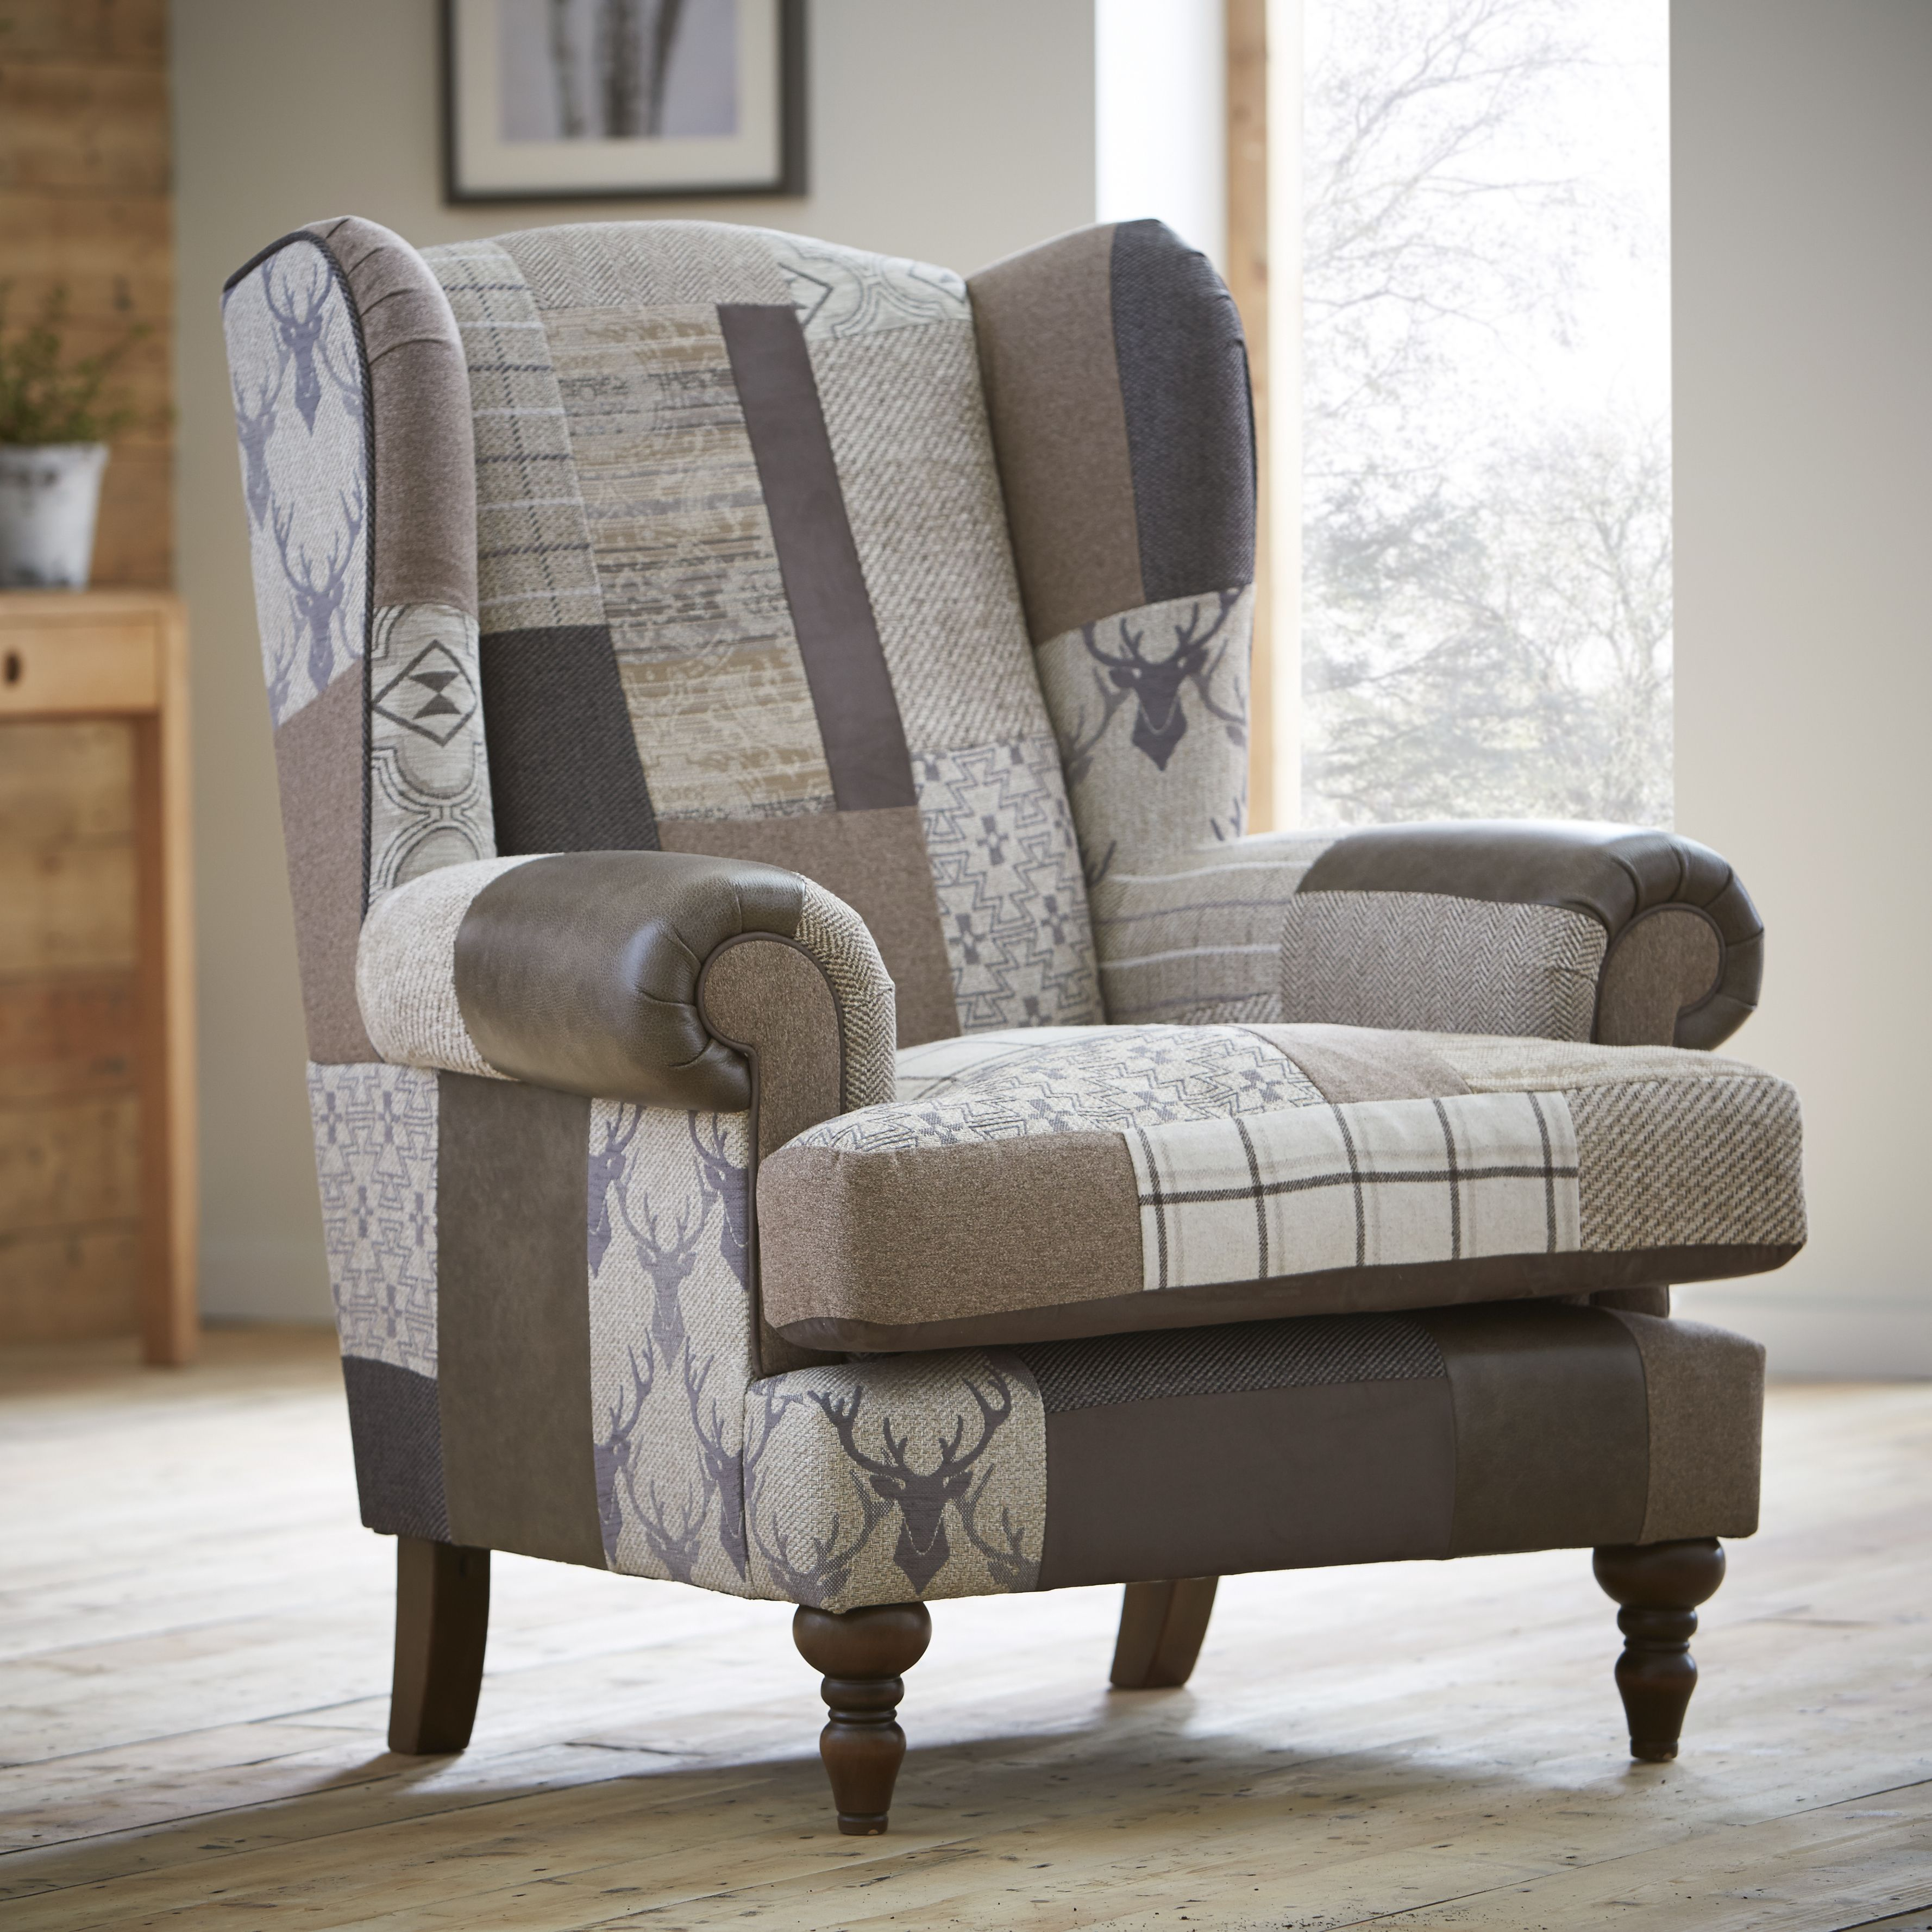 wing armchairs living room wing chair www dfs co uk alpine cottage couture 22163 | 246acadd952ccd8d59778571b4b44c82